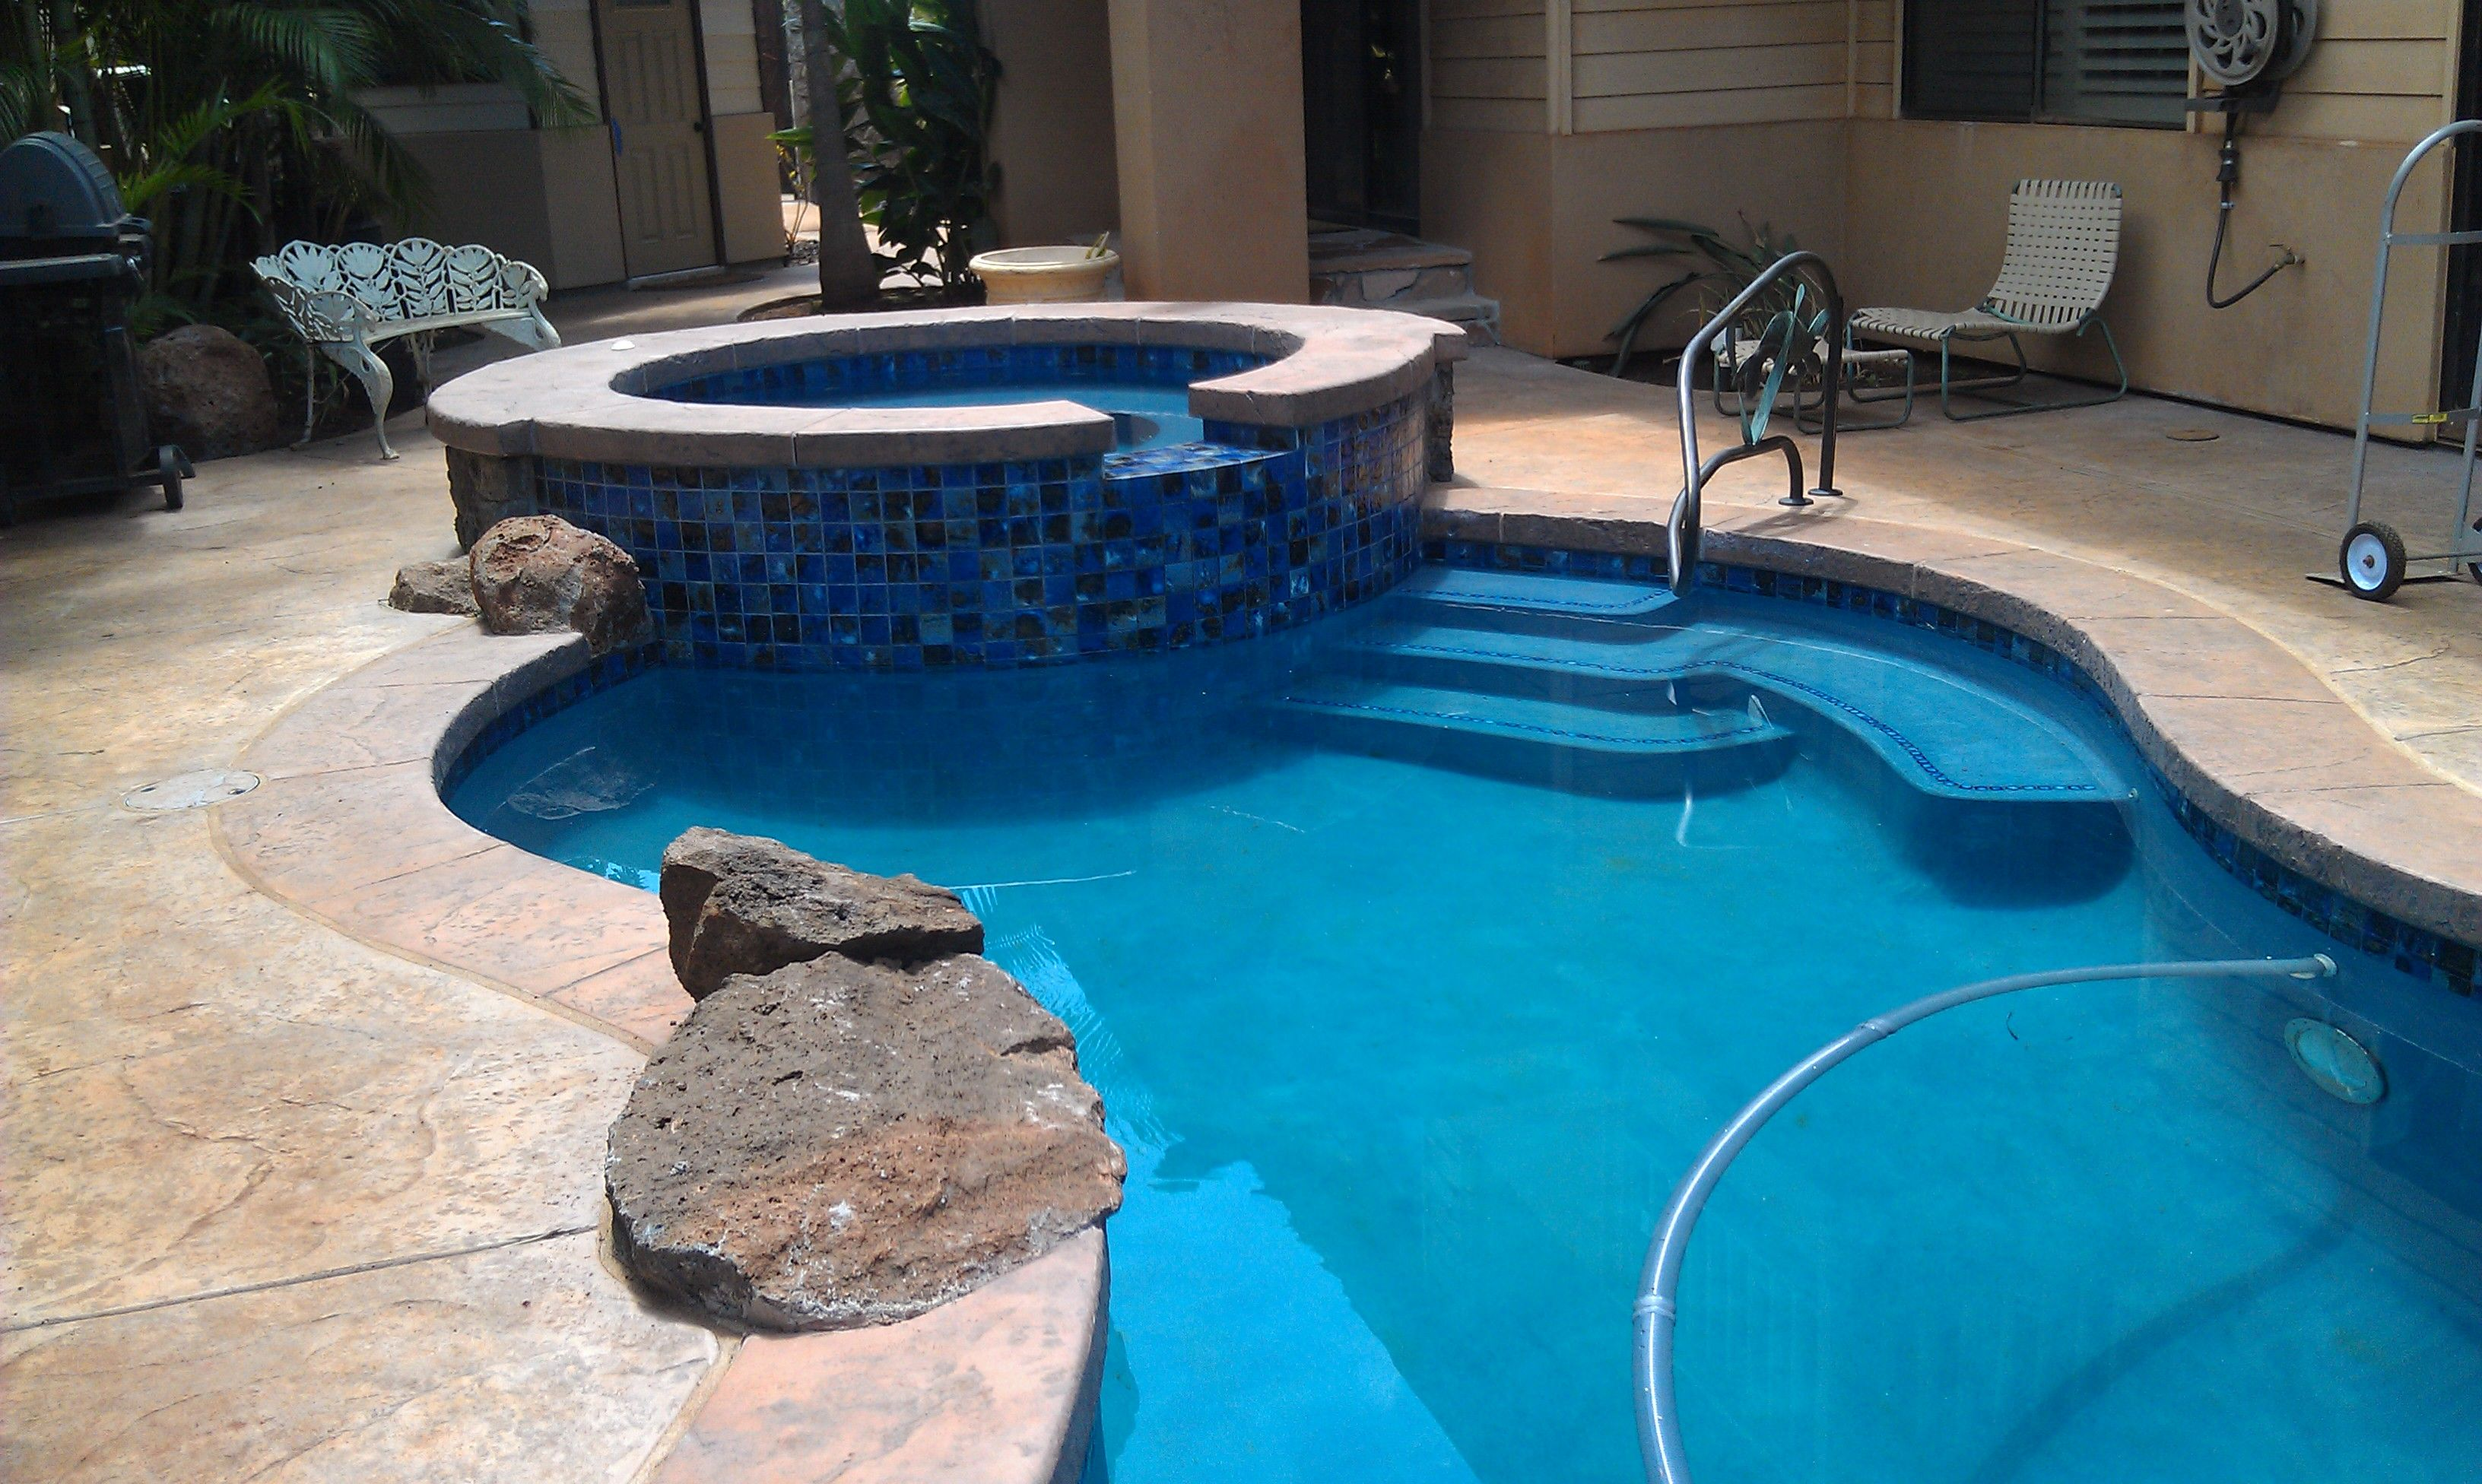 Pacific blue hydrazzo huber pool stamped concrete coping for Pacific pools